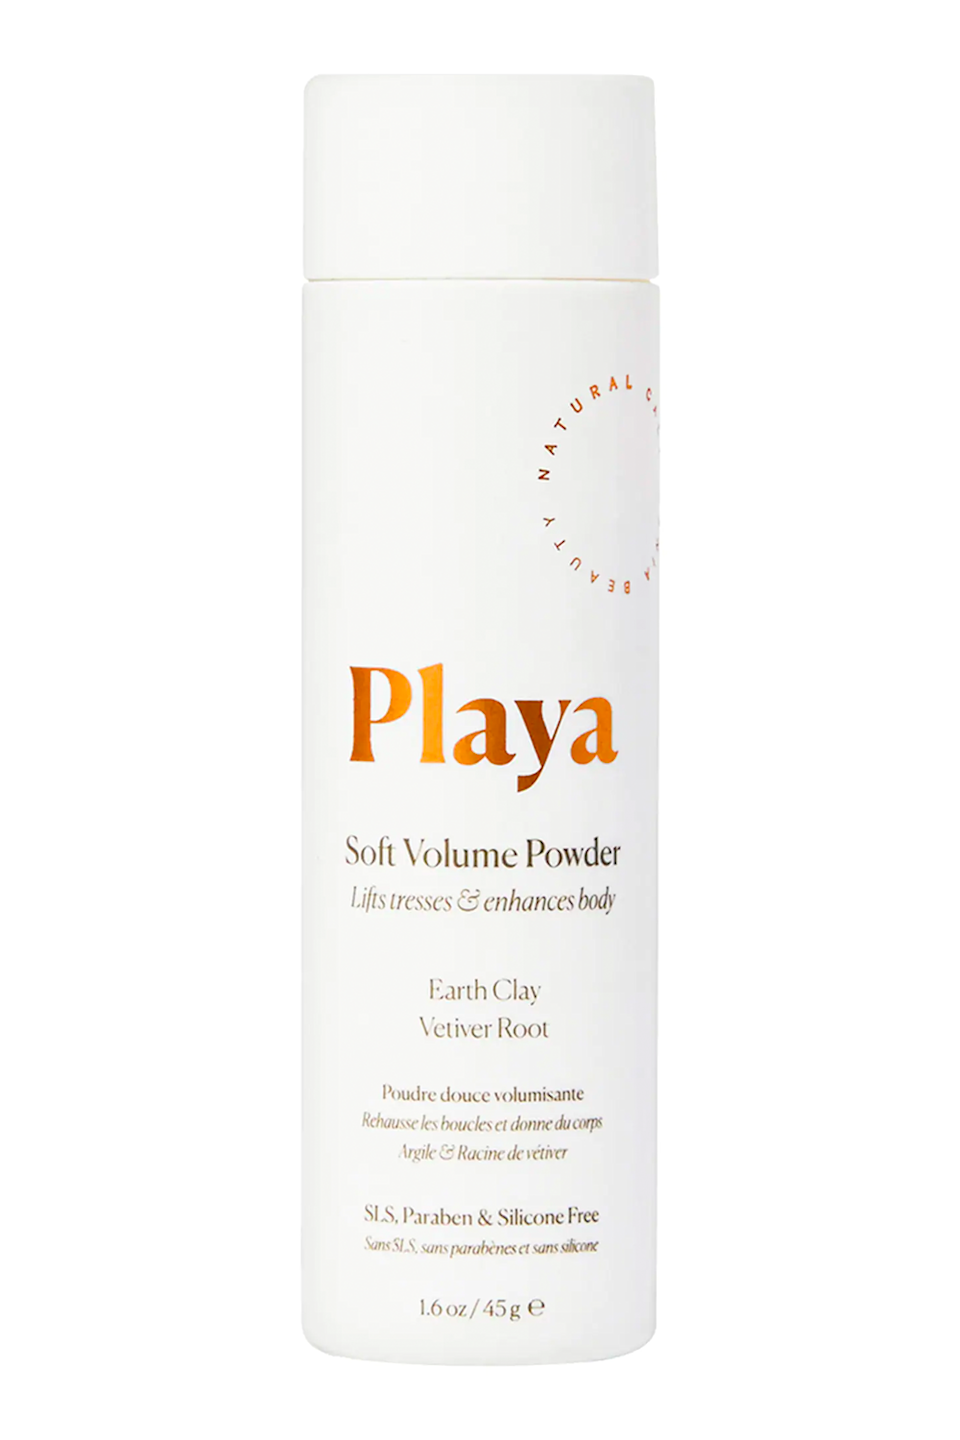 """<p><strong>Playa</strong></p><p>sephora.com</p><p><strong>$24.00</strong></p><p><a href=""""https://go.redirectingat.com?id=74968X1596630&url=https%3A%2F%2Fwww.sephora.com%2Fproduct%2Fsoft-volume-powder-P443581&sref=https%3A%2F%2Fwww.cosmopolitan.com%2Fstyle-beauty%2Fbeauty%2Fg34362098%2Fbest-hair-volumizing-powder%2F"""" rel=""""nofollow noopener"""" target=""""_blank"""" data-ylk=""""slk:Shop Now"""" class=""""link rapid-noclick-resp"""">Shop Now</a></p><p>You know those days when your <a href=""""https://www.cosmopolitan.com/style-beauty/beauty/a26325865/wavy-hairstyles-how-tos/"""" rel=""""nofollow noopener"""" target=""""_blank"""" data-ylk=""""slk:waves"""" class=""""link rapid-noclick-resp"""">waves</a> look and feel a little lifeless? Yeah, that's when you should whip out this volume powder from Playa. The formula's rice starch, kaolin, and Moroccan lava clay all come together to <strong>absorb oil and enhance volume without weighing down your hair</strong>.</p>"""